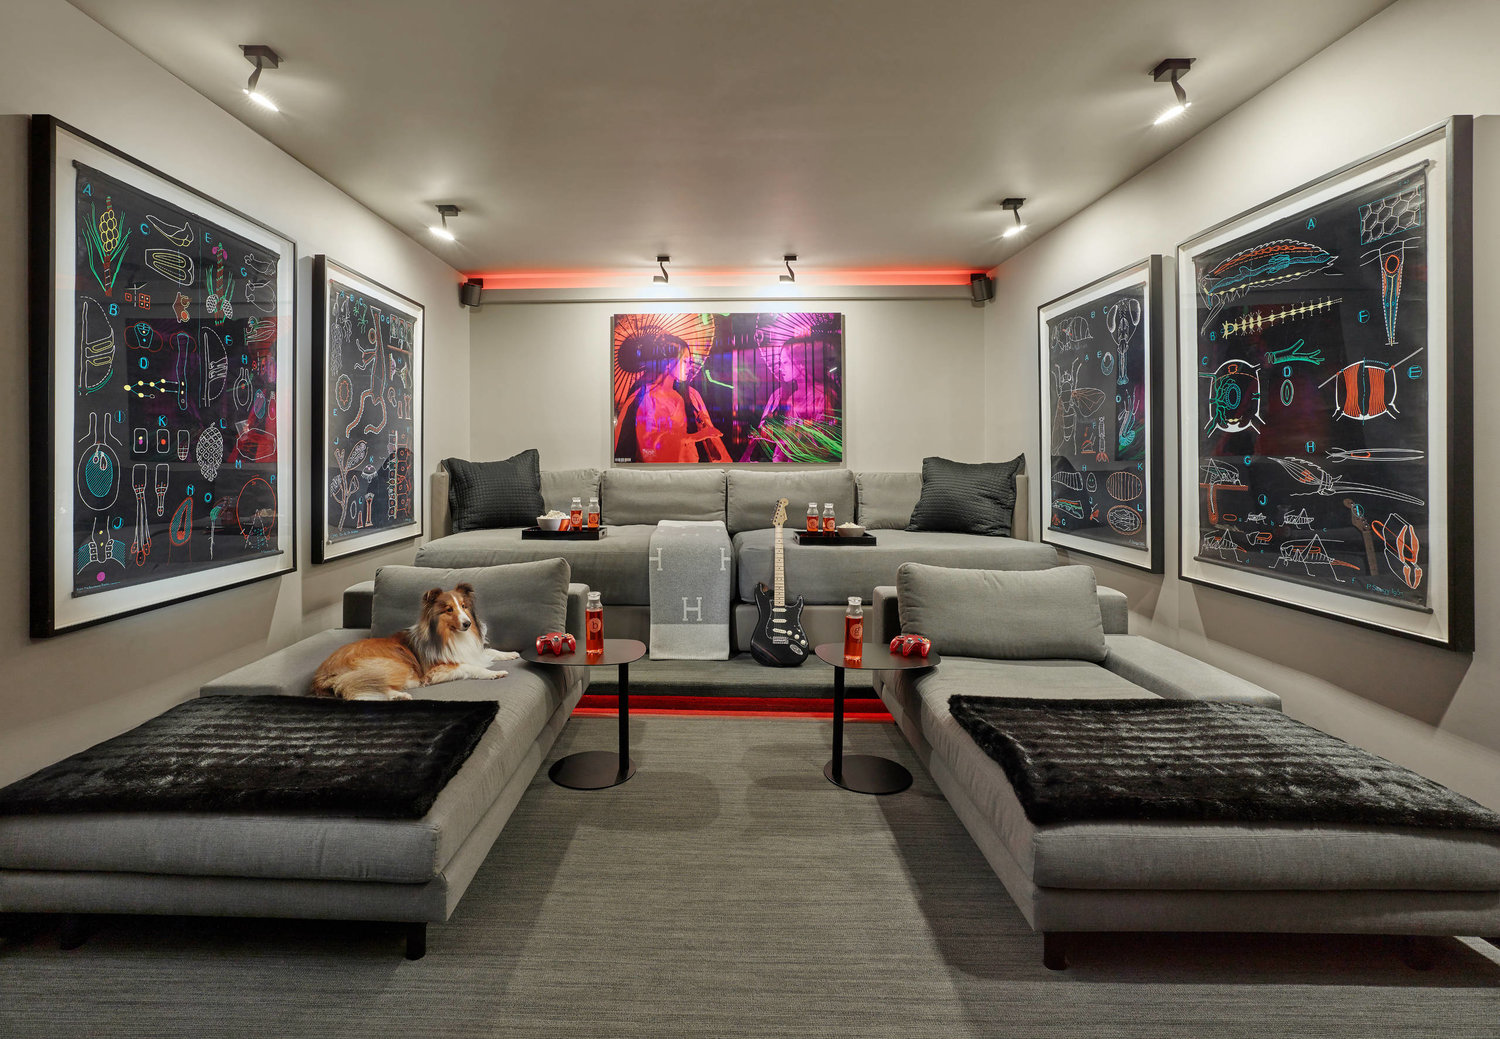 Before After A Typical Garage Becomes A Vibrant Home Theater B G Design Inc Miami